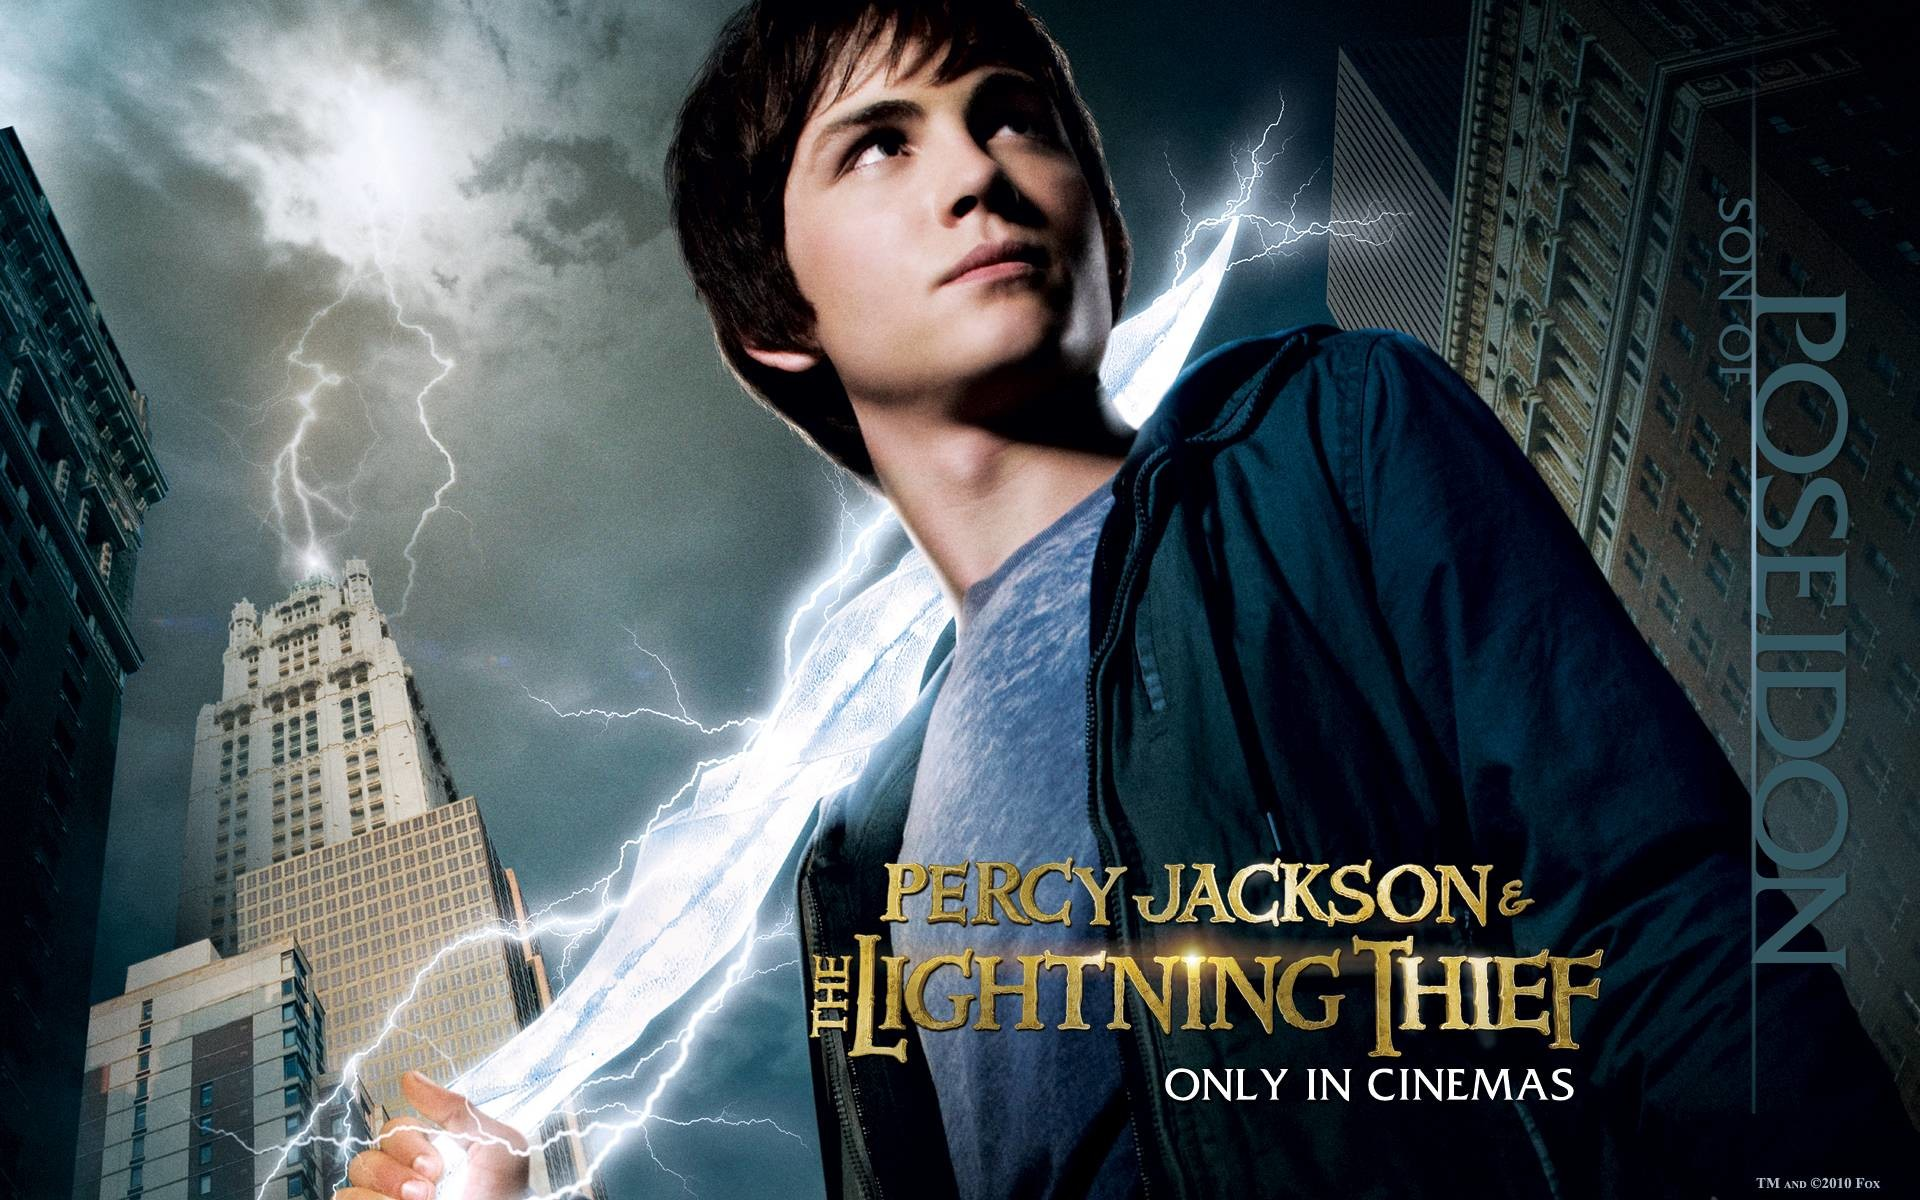 percy jackson & the olympians the lightning thief download